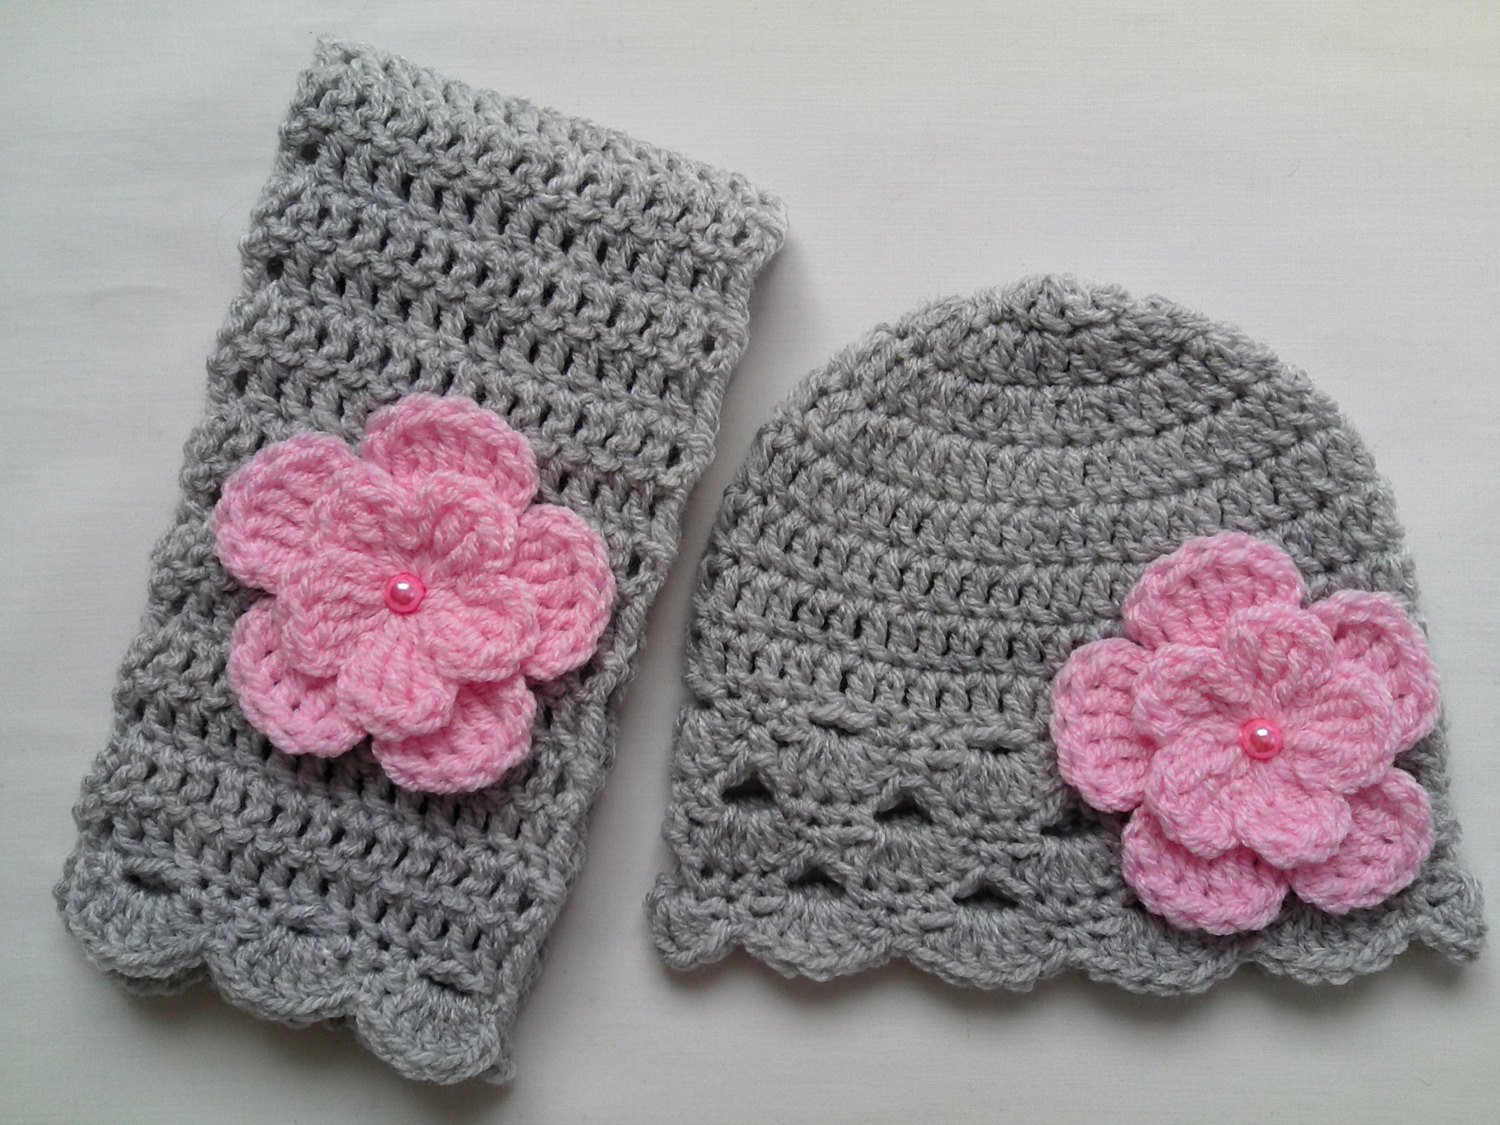 Fresh Crochet Baby toddler Kids Hat and Scarf Set by Crochet Hat and Scarf Of Superb 50 Pics Crochet Hat and Scarf